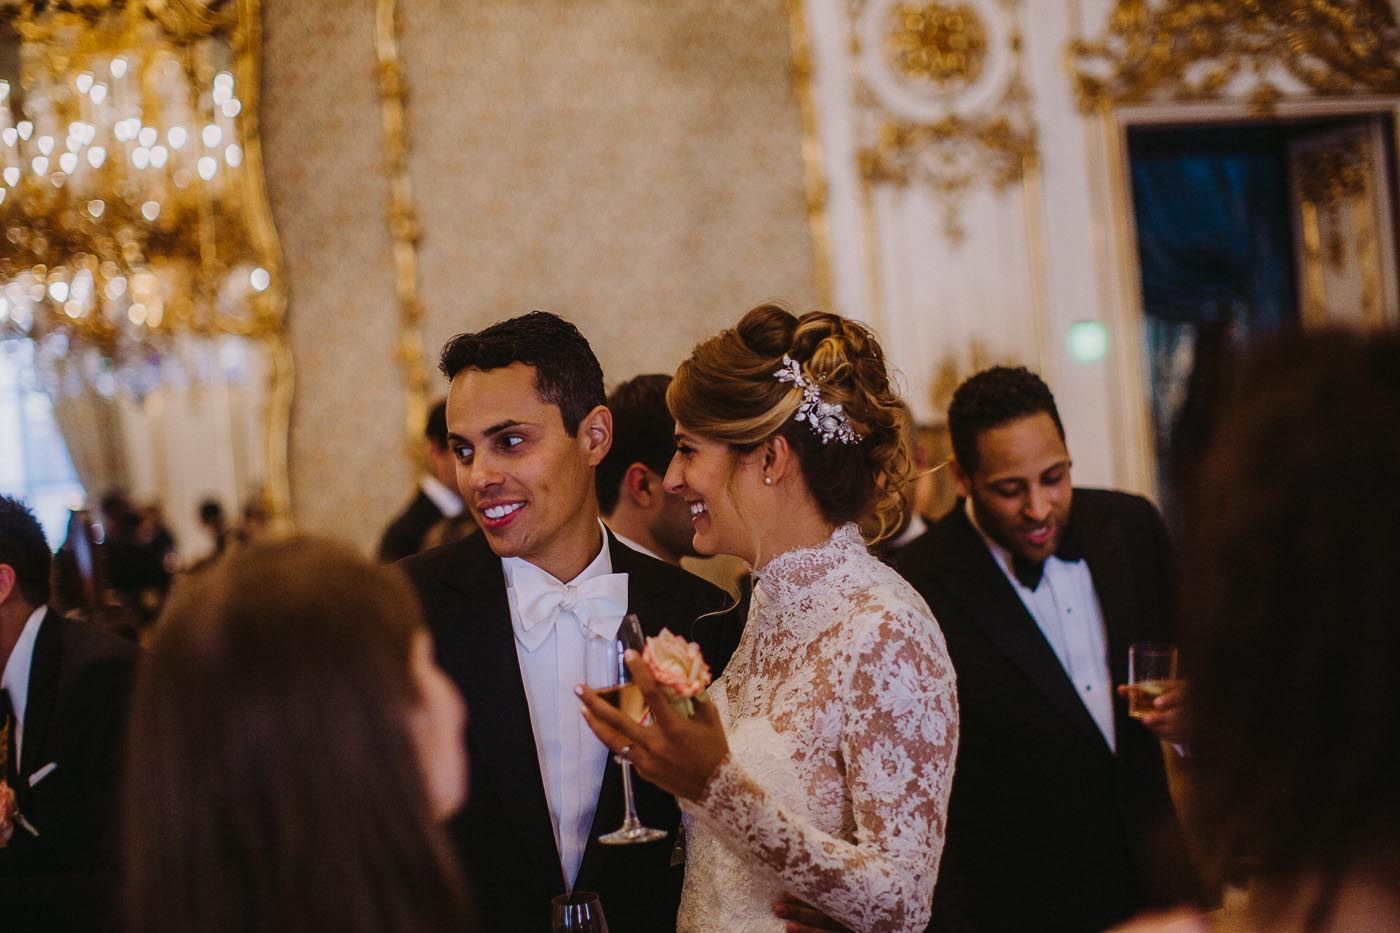 wedding-palais-liechtenstein-vienna-475